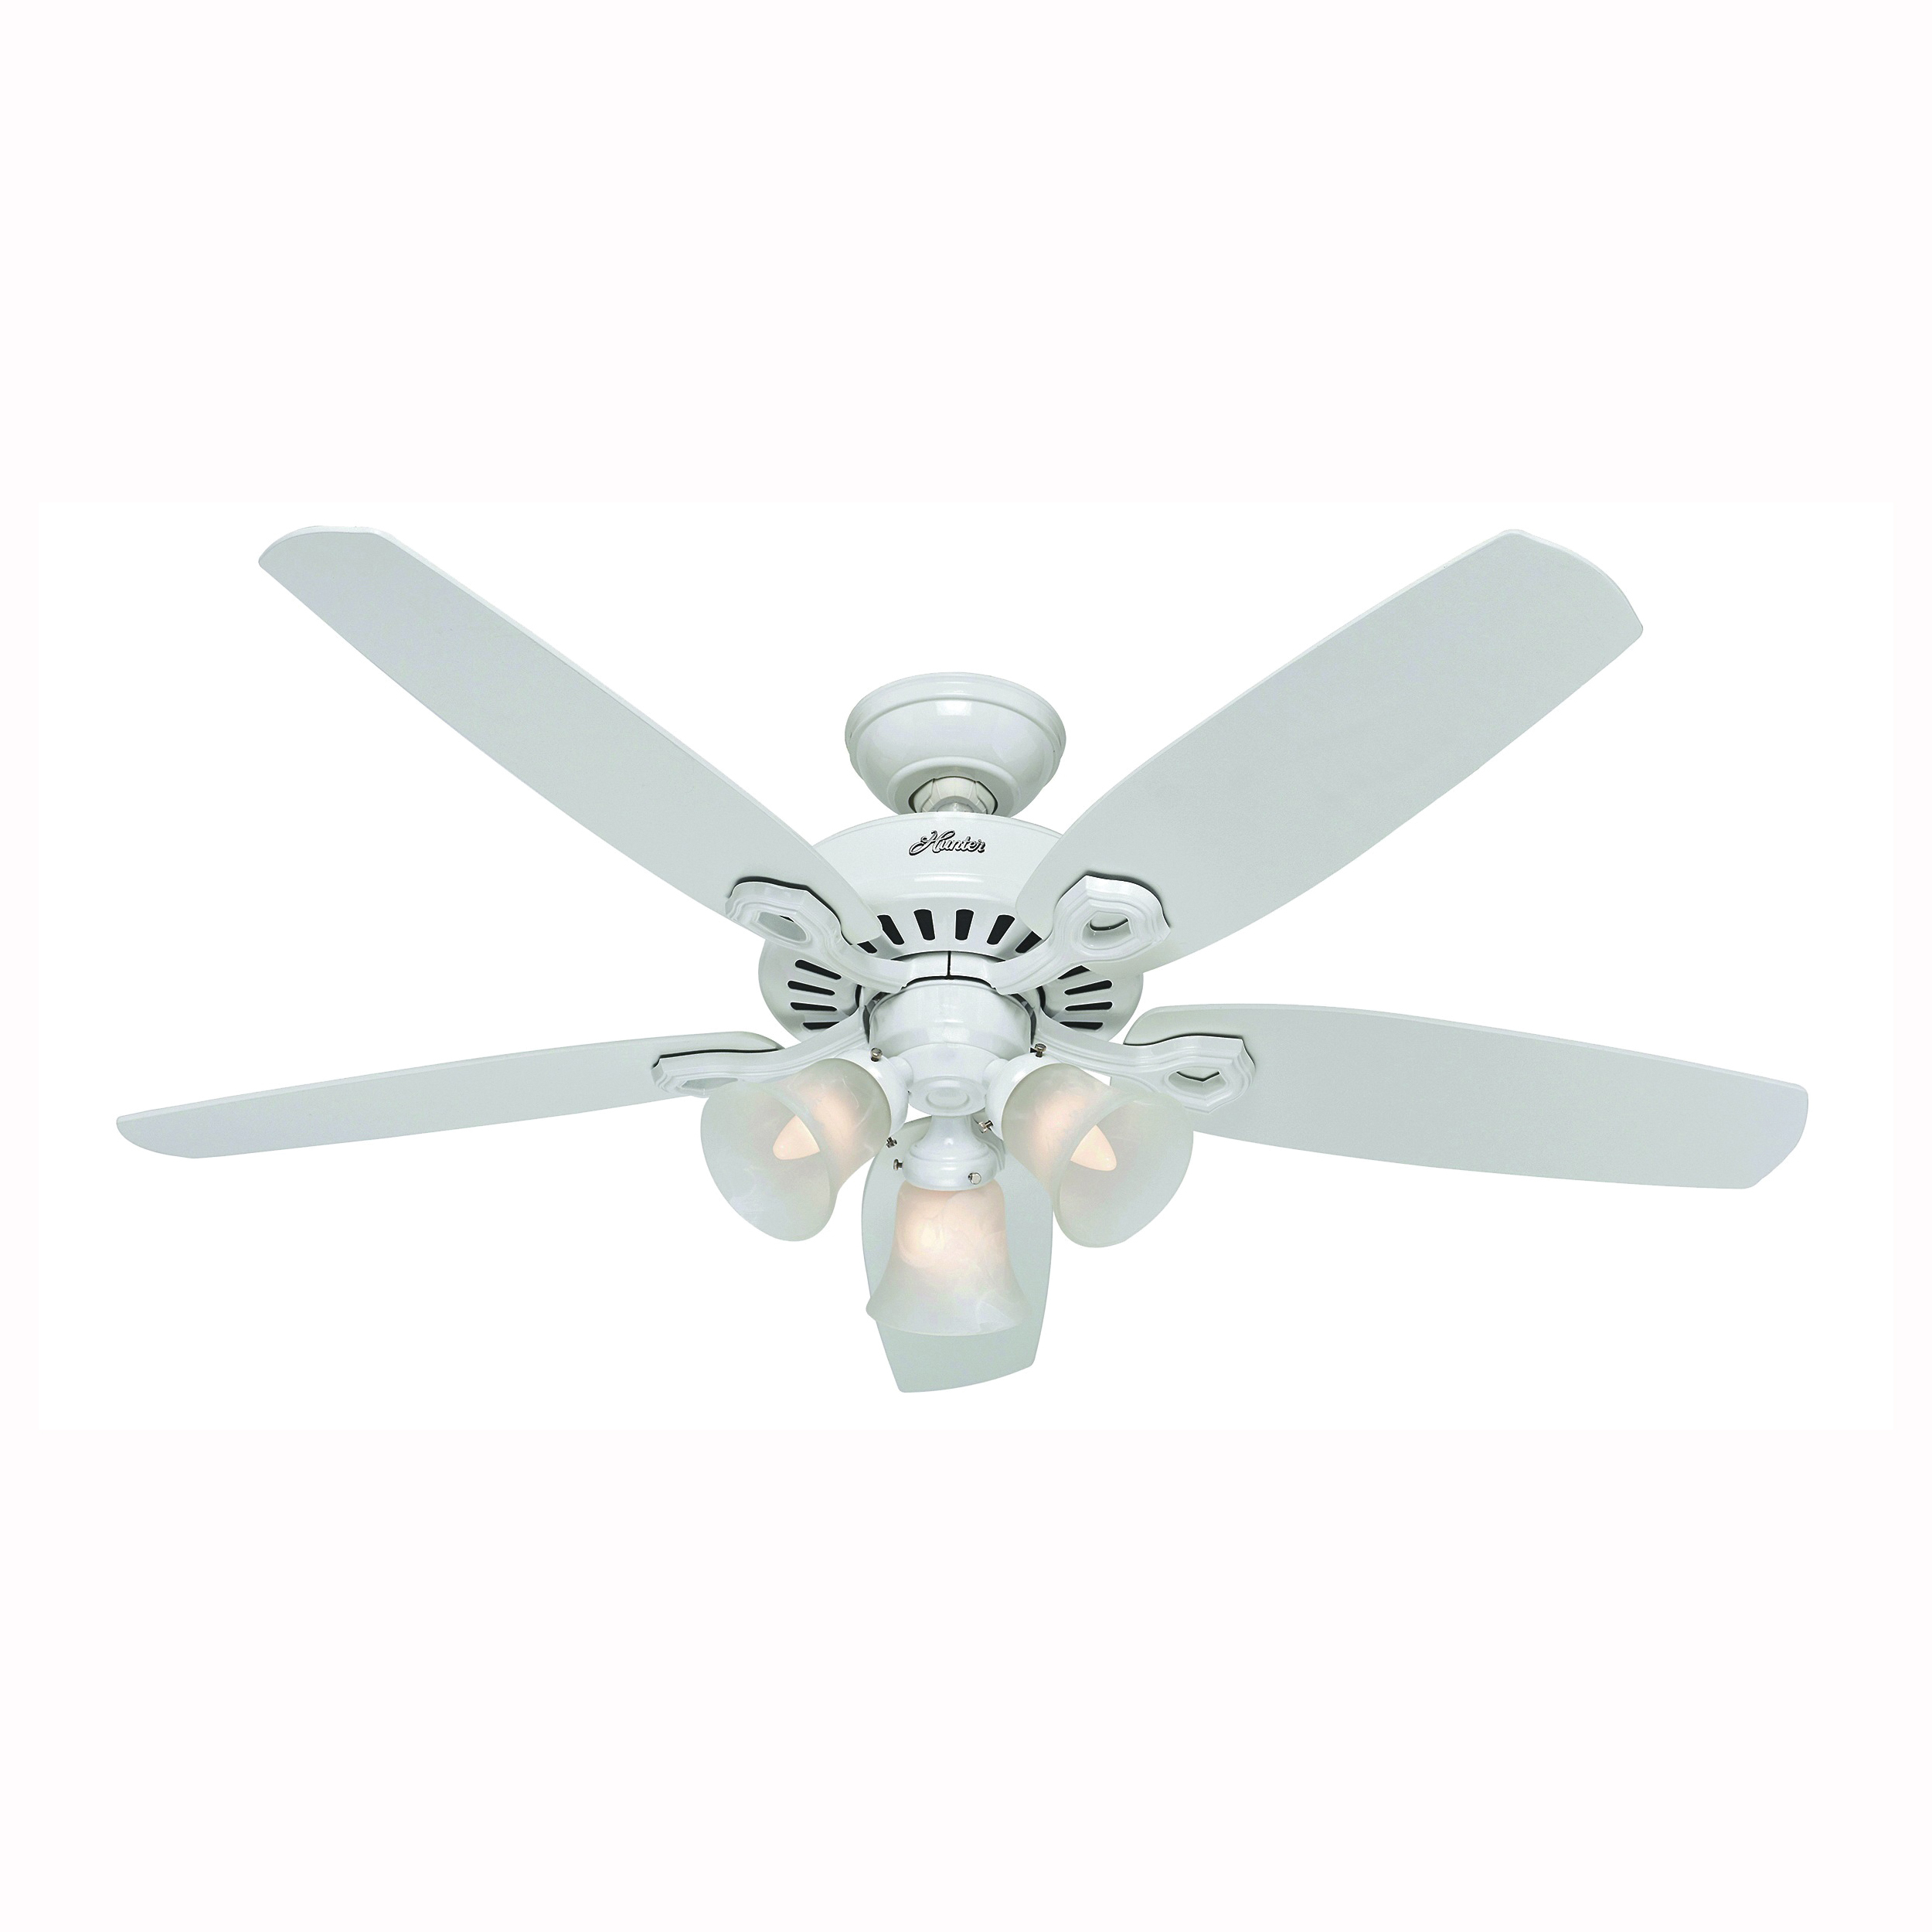 Picture of Hunter 53236 Ceiling Fan, 0.52 A, 52 in Sweep, 5049 cfm Air